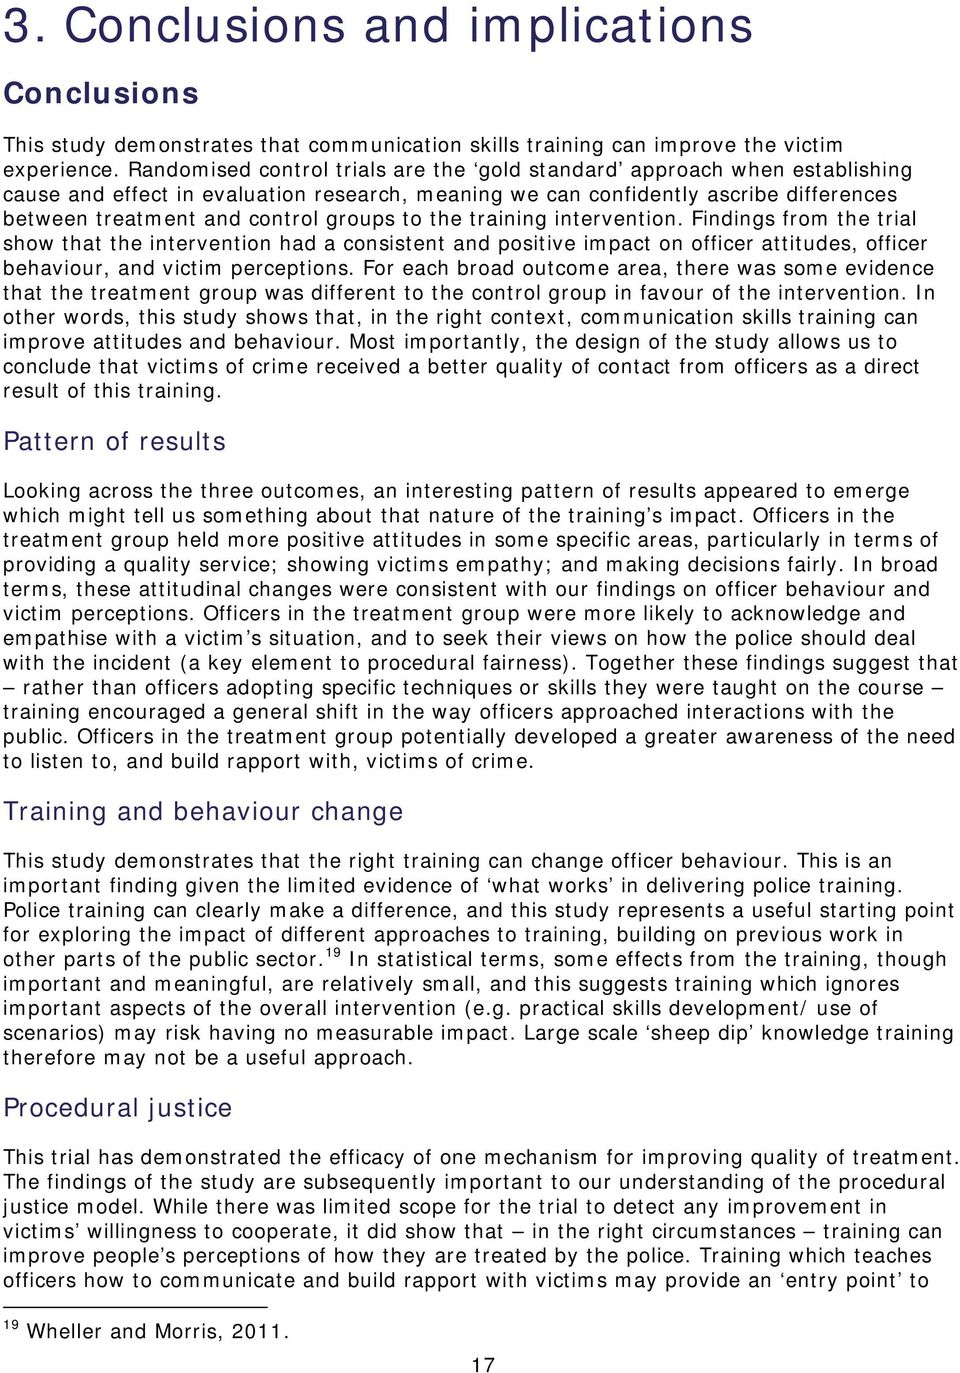 to the training intervention. Findings from the trial show that the intervention had a consistent and positive impact on officer attitudes, officer behaviour, and victim perceptions.